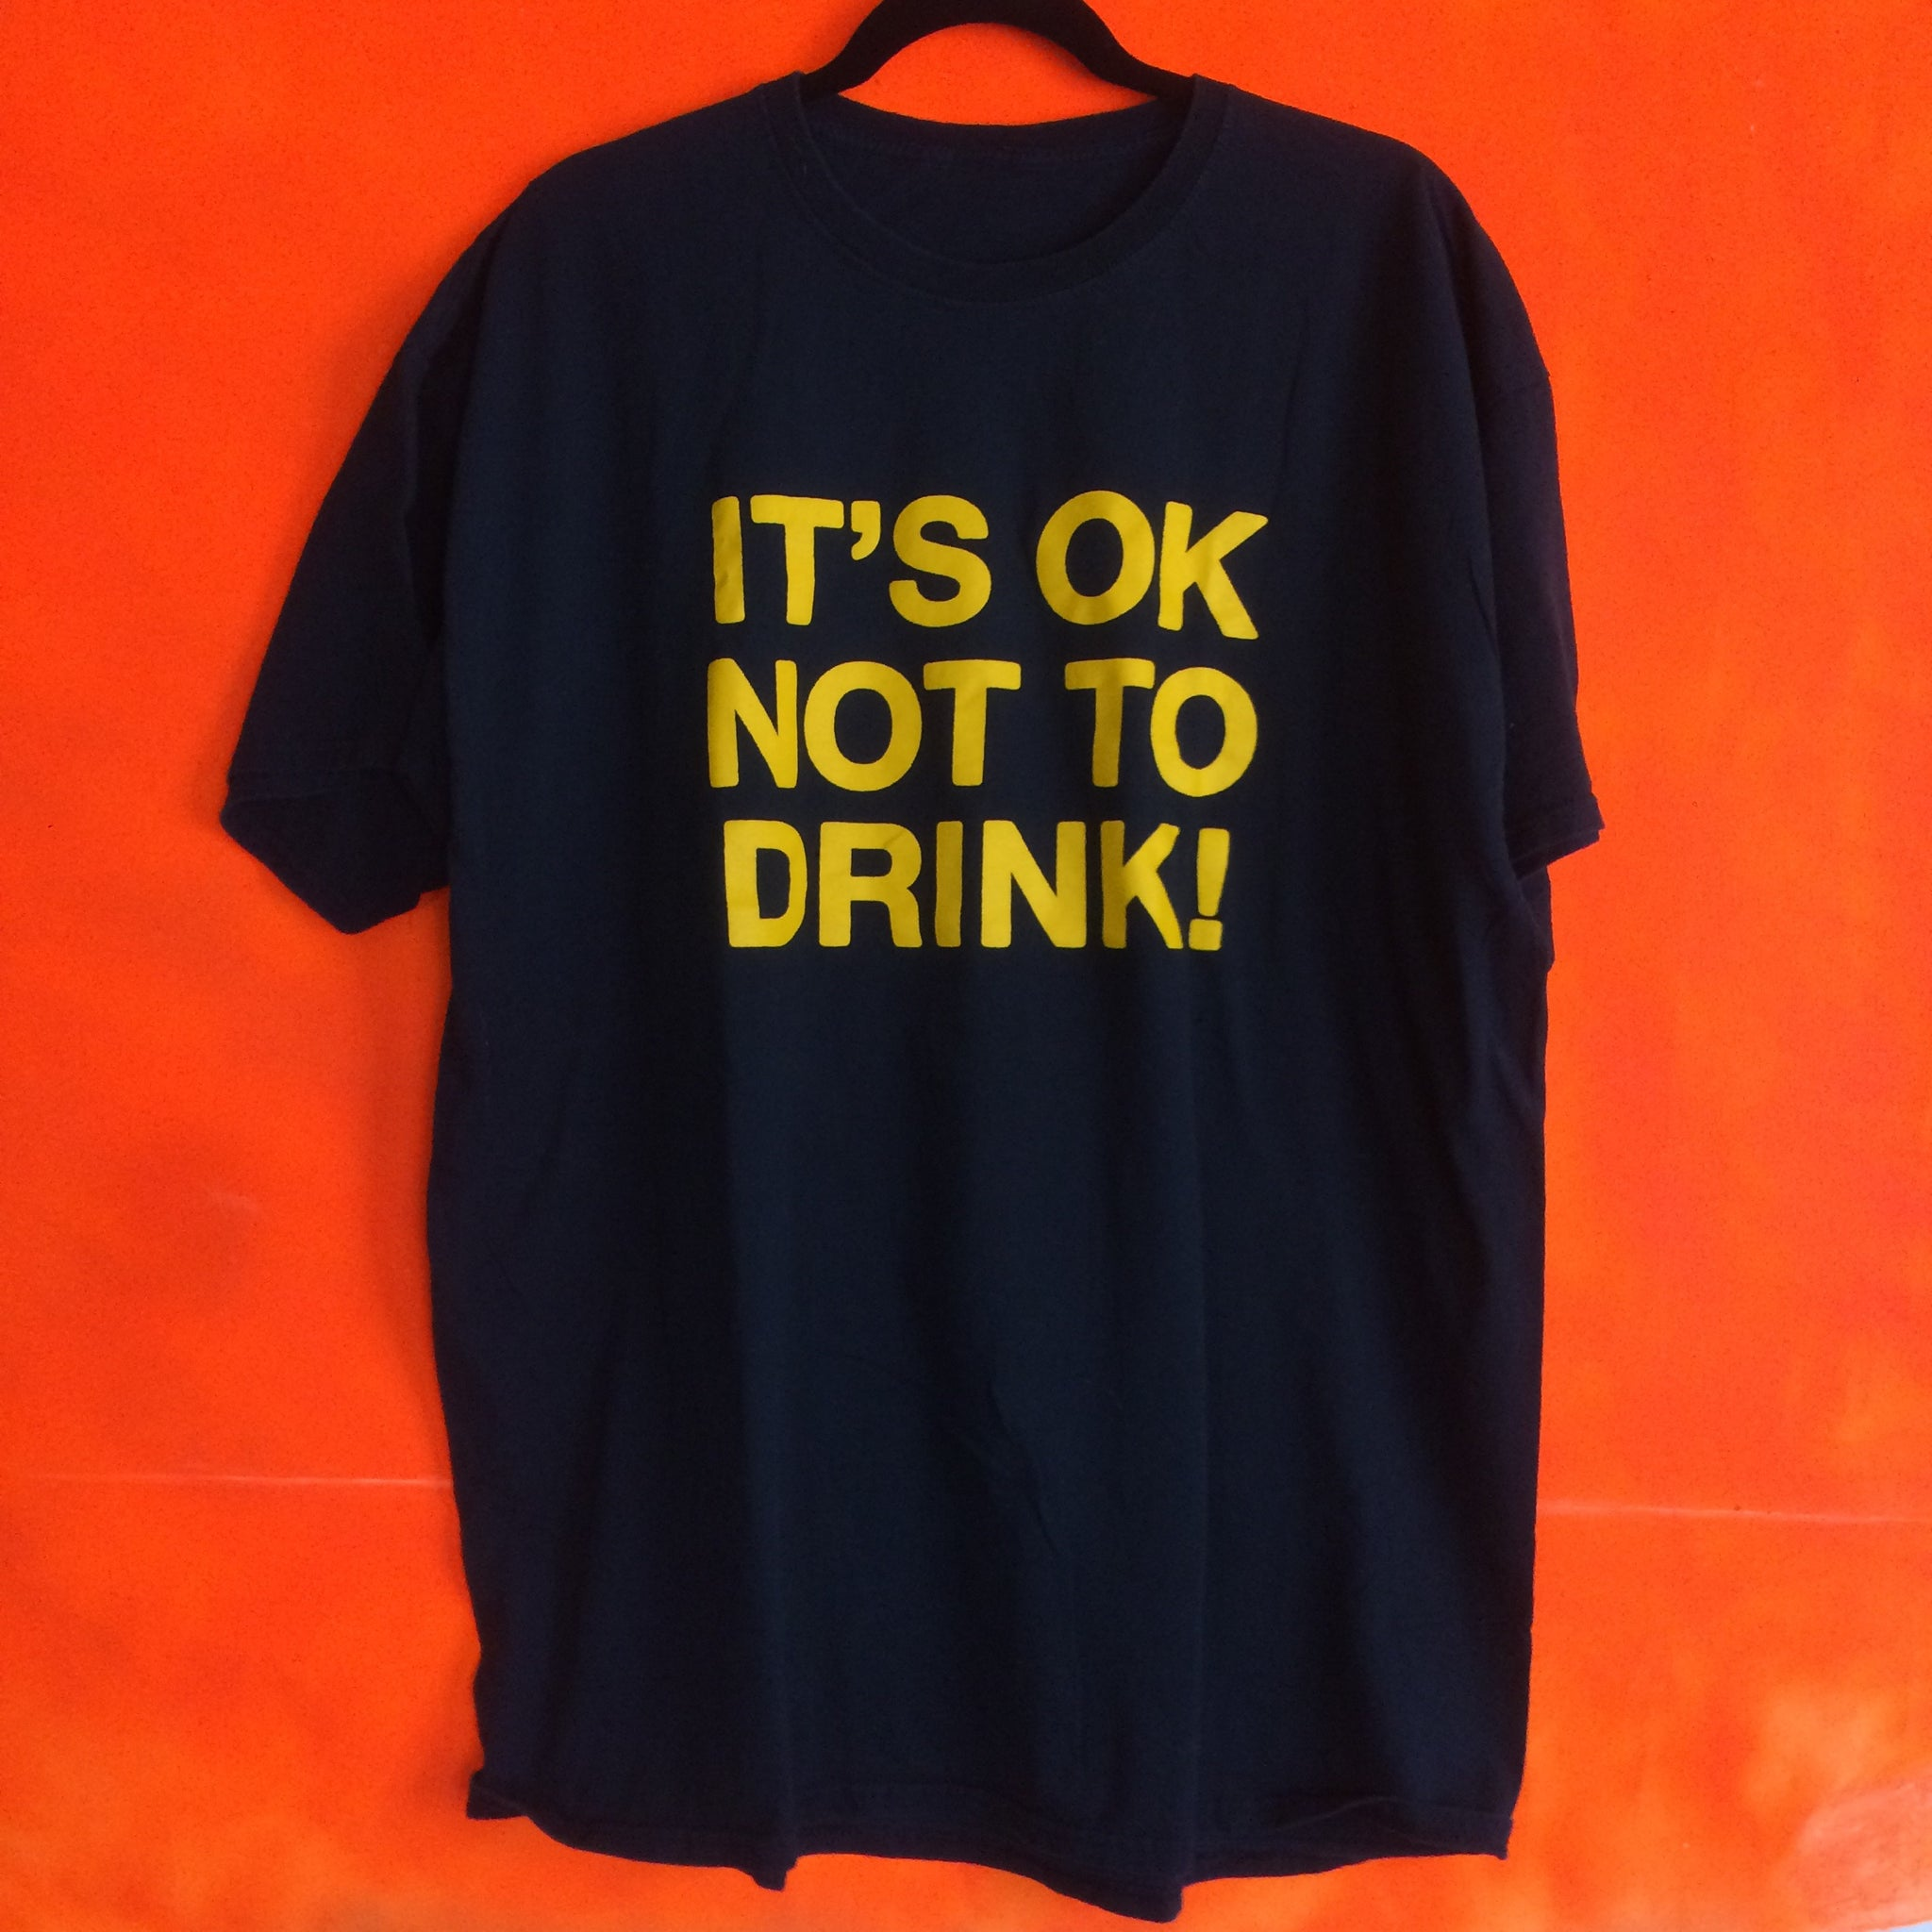 It's Ok Not To Drink - T-shirt (XL)